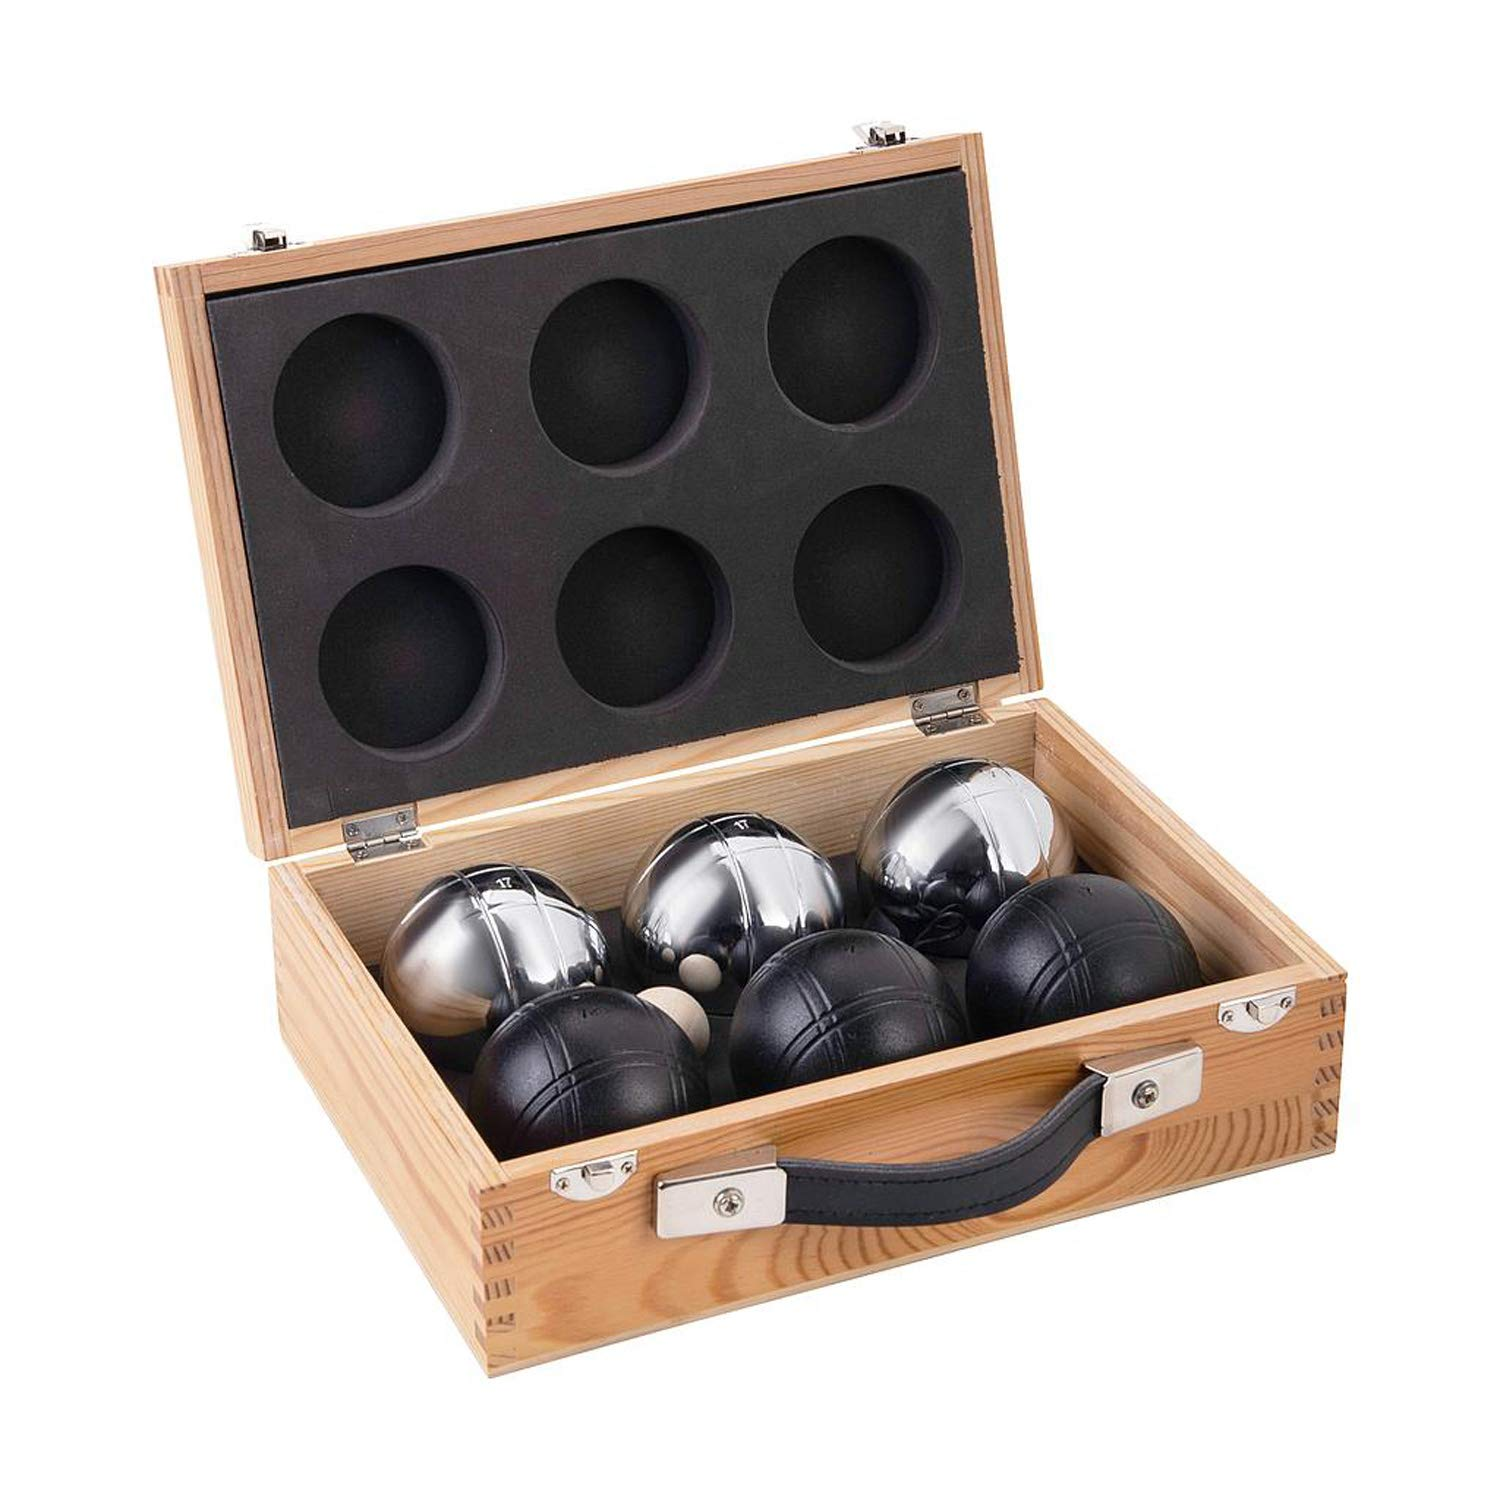 Weiblespiele 010208 Set in Wooden Box, Pack of 6, Black/Silver